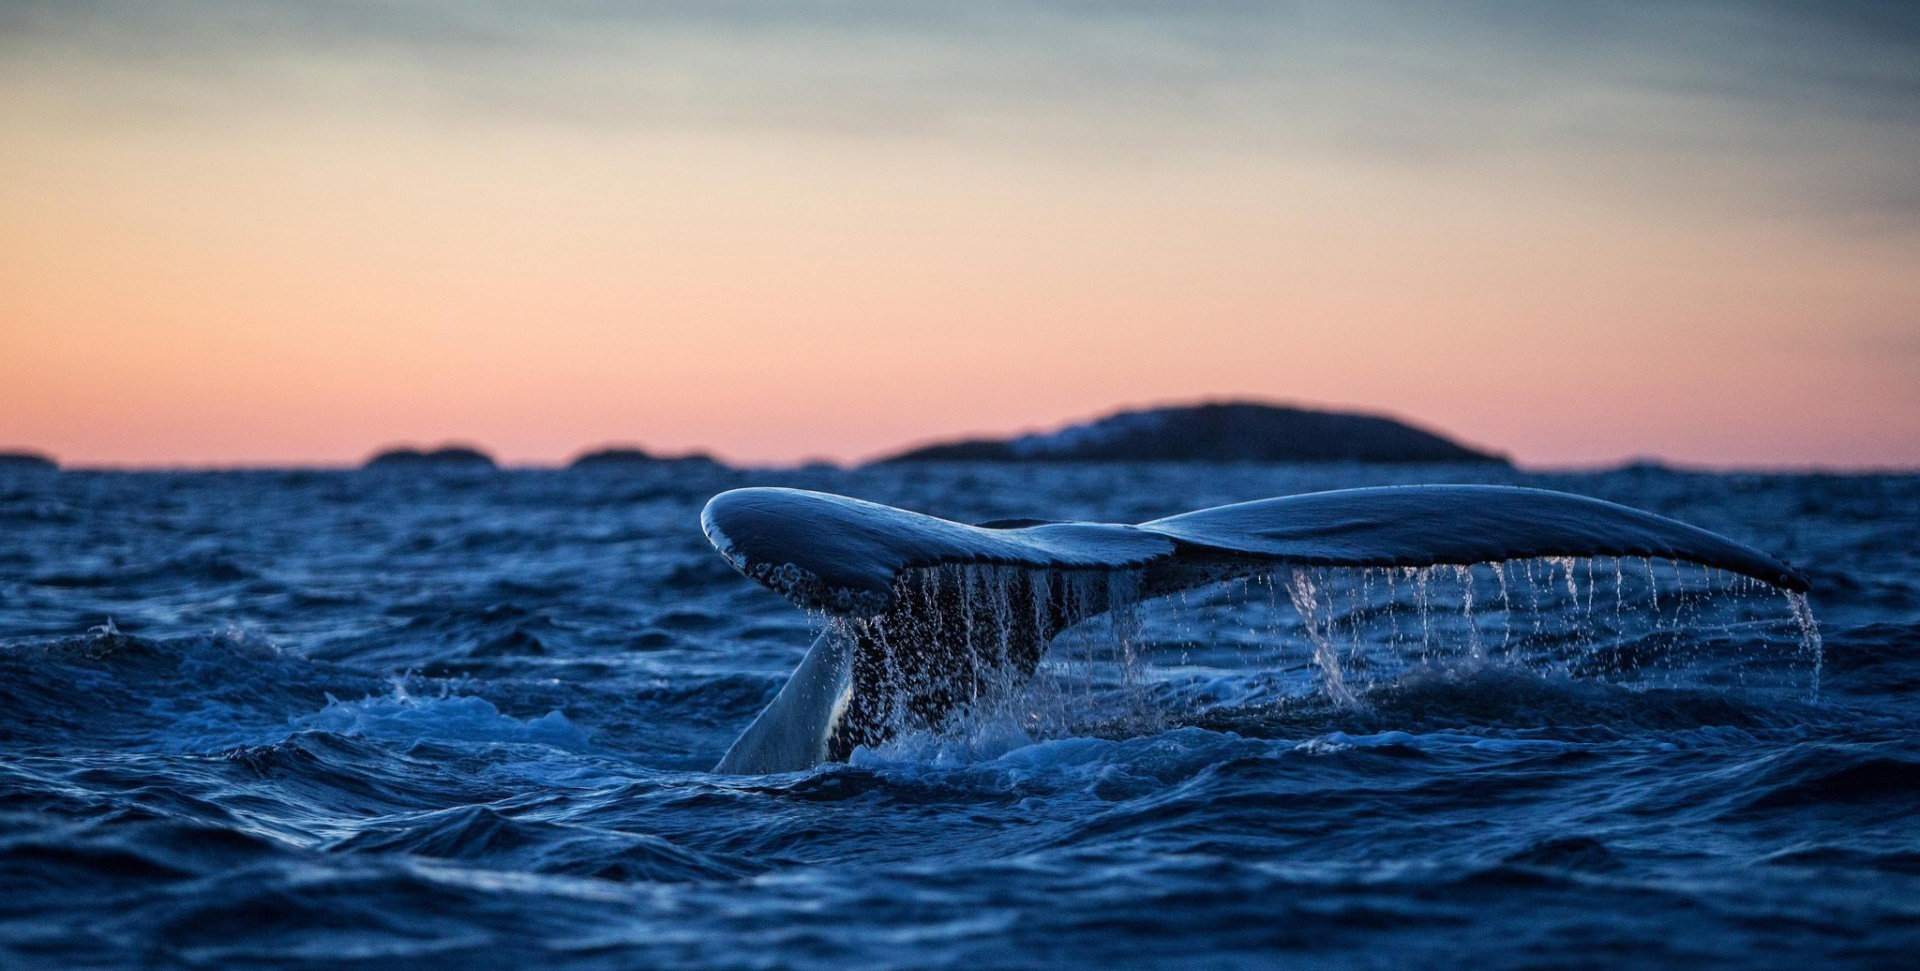 Atlantic-Ocean-Whale-Tail